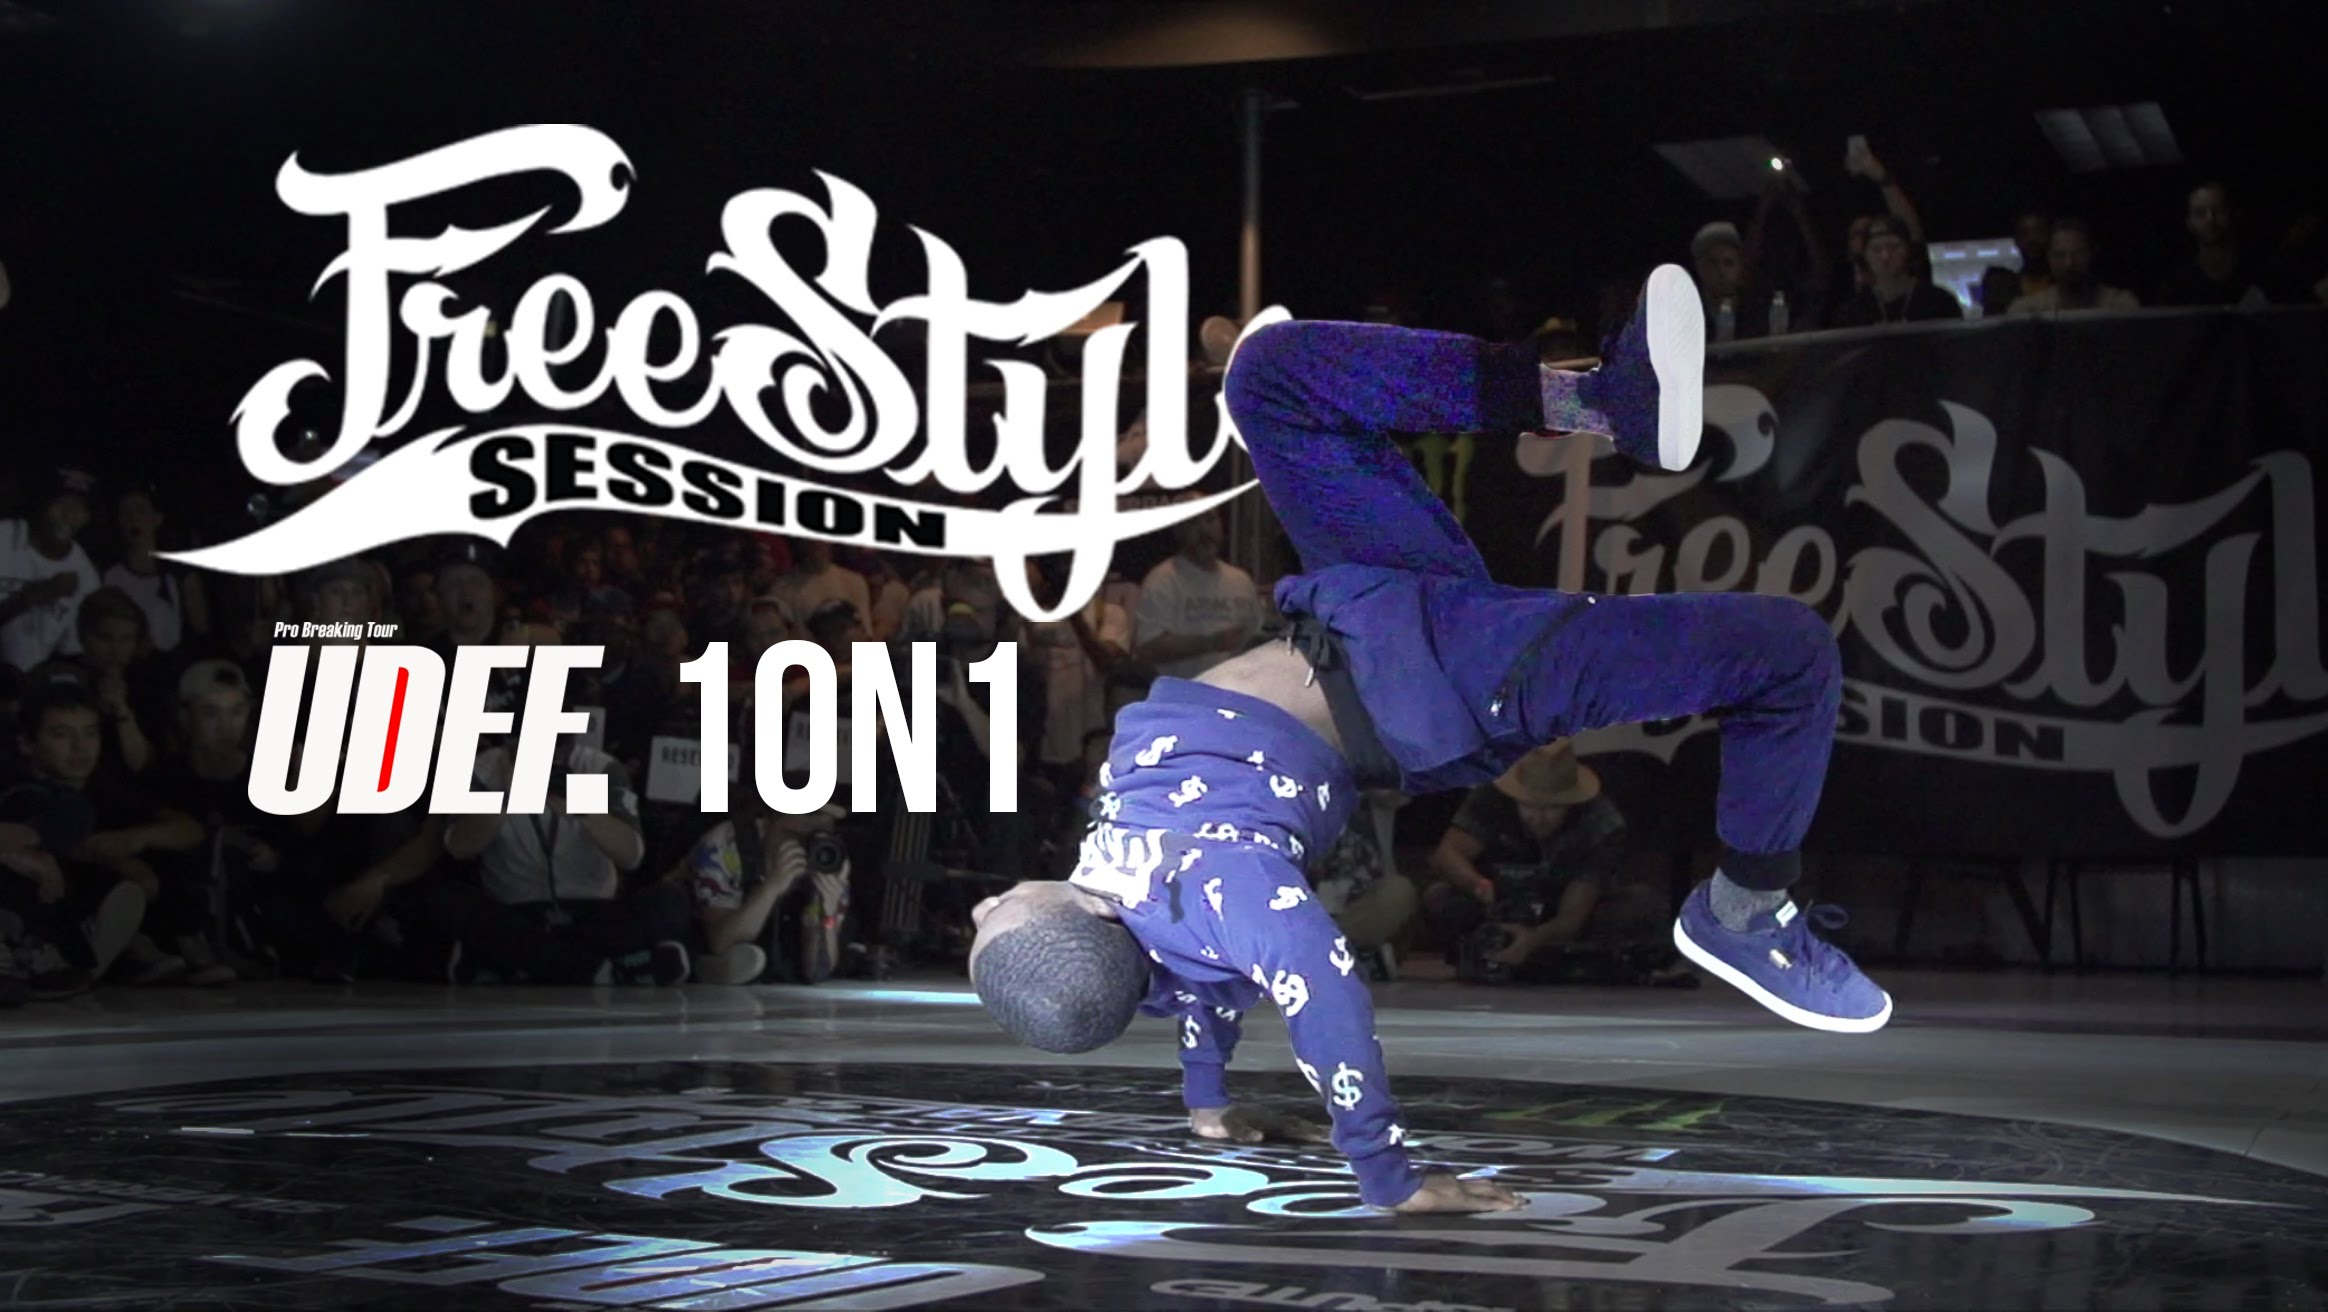 freestyle-session-1on1-2015-bboy-battle-yakfilms-video